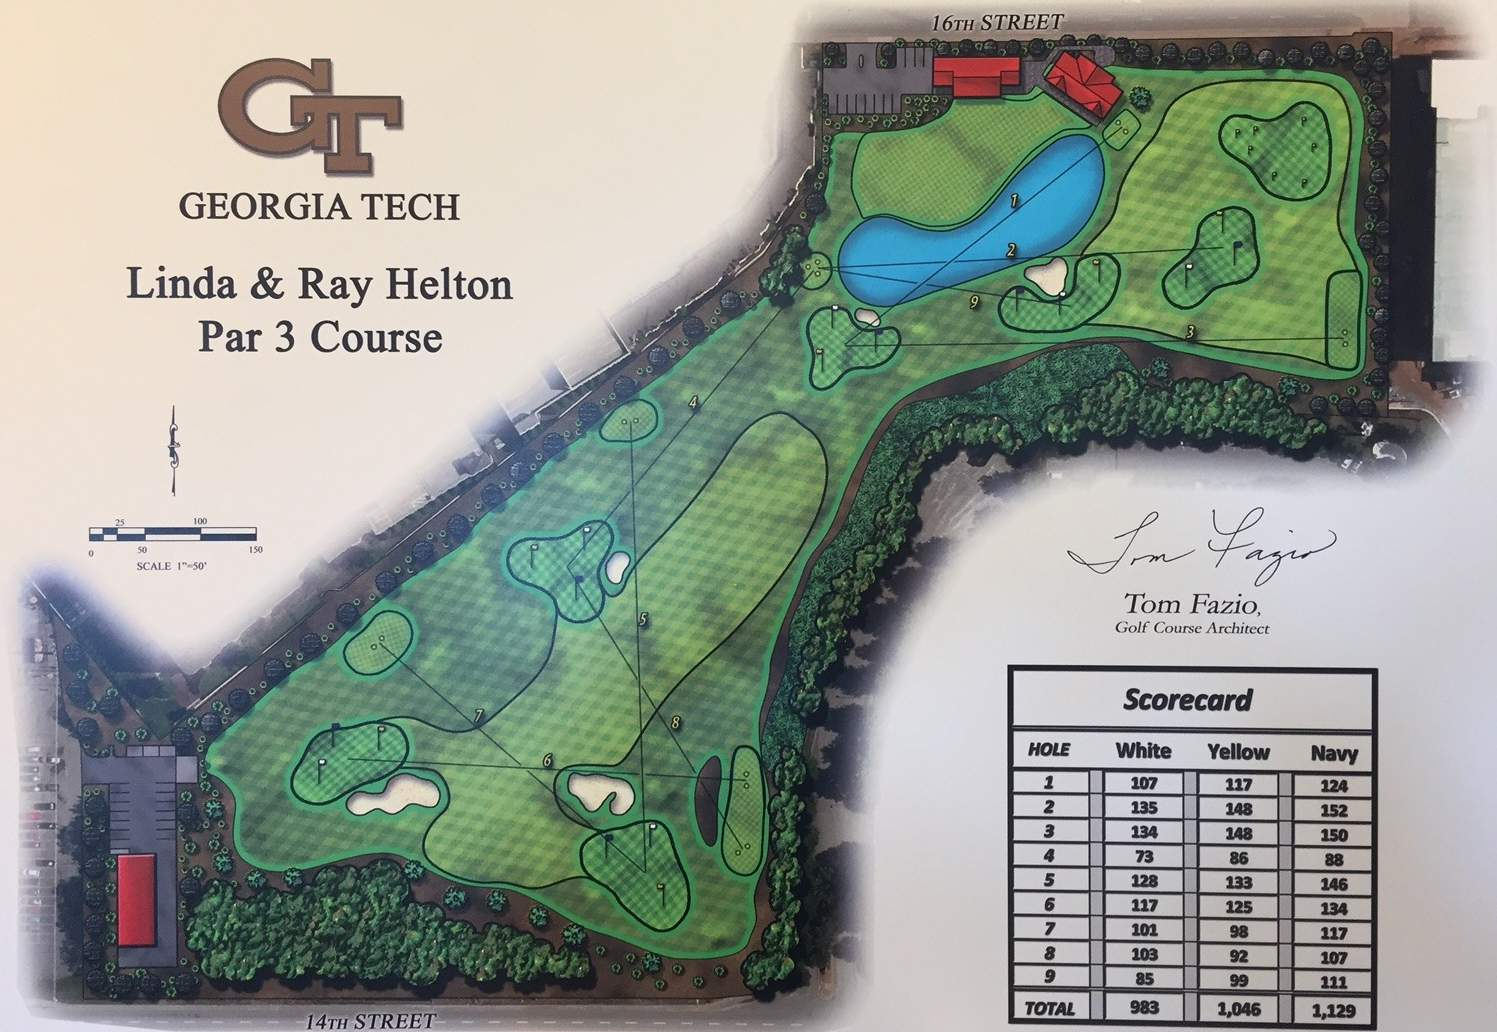 Rendering of the Linda and Ray Helton Par 3 Course at the Noonan Golf Facility